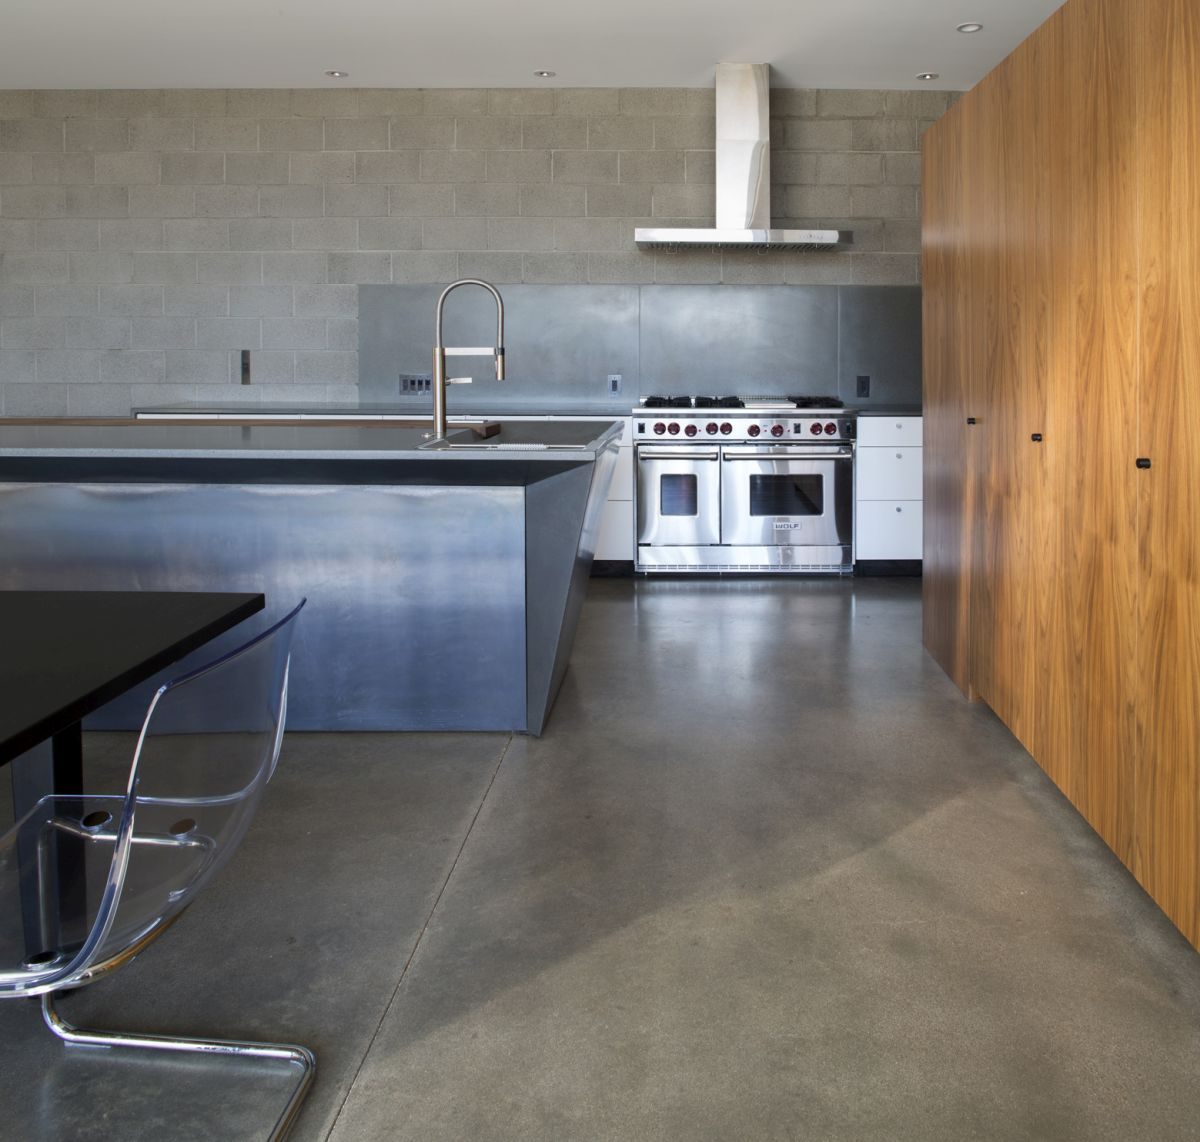 The STAAB Residence kitchen